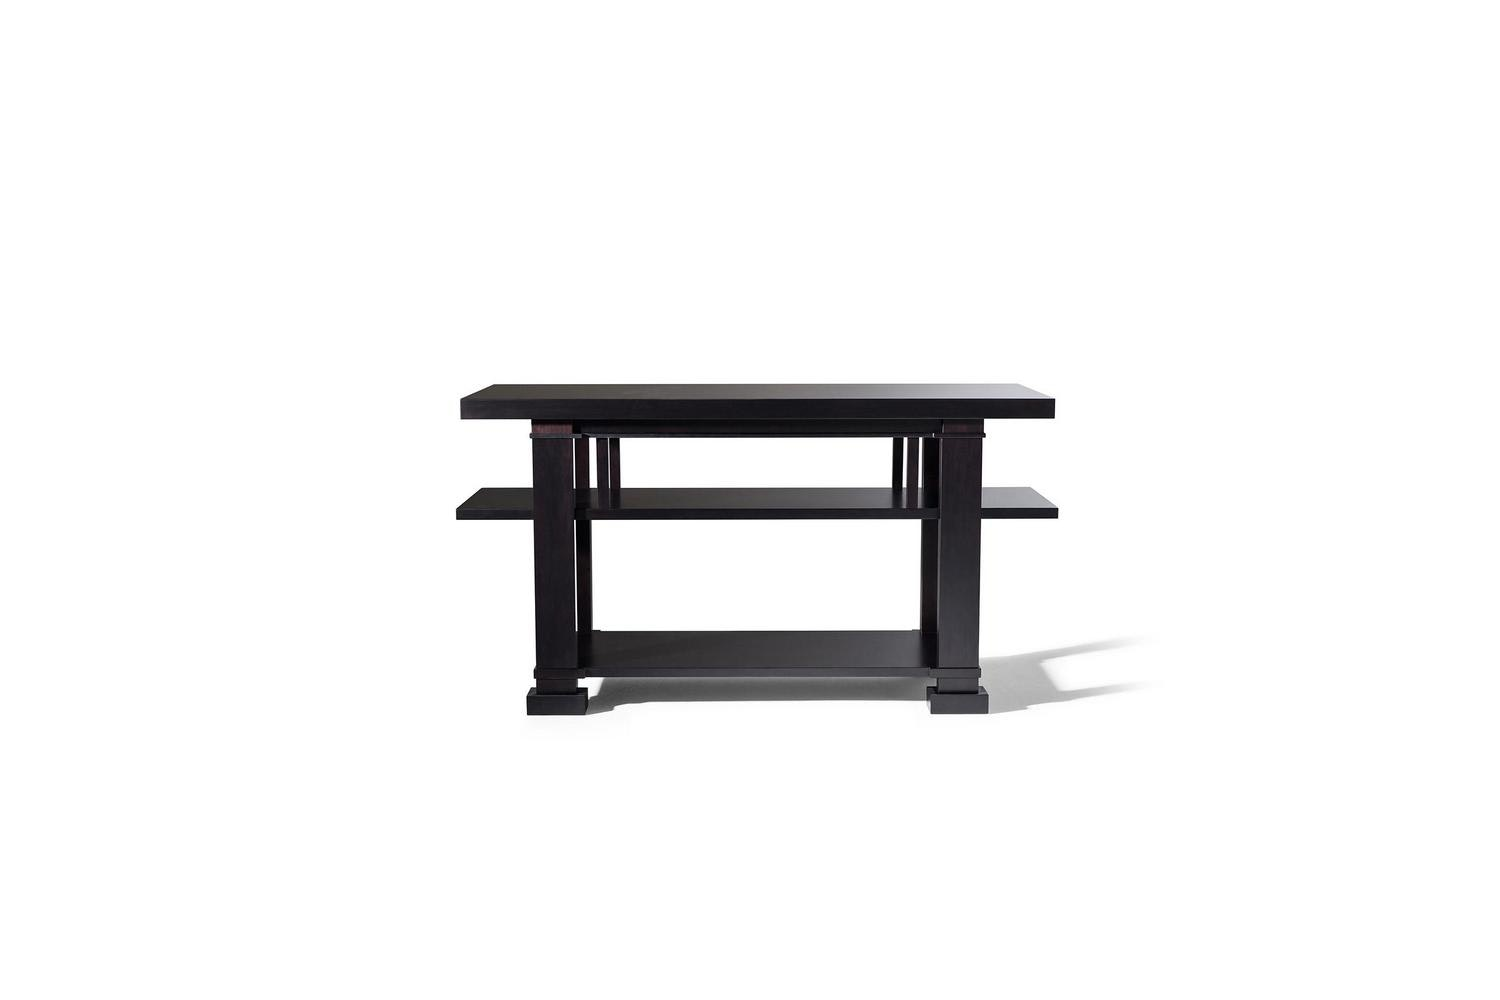 625 Boynton Hall Console Table by Frank Lloyd Wright for Cassina